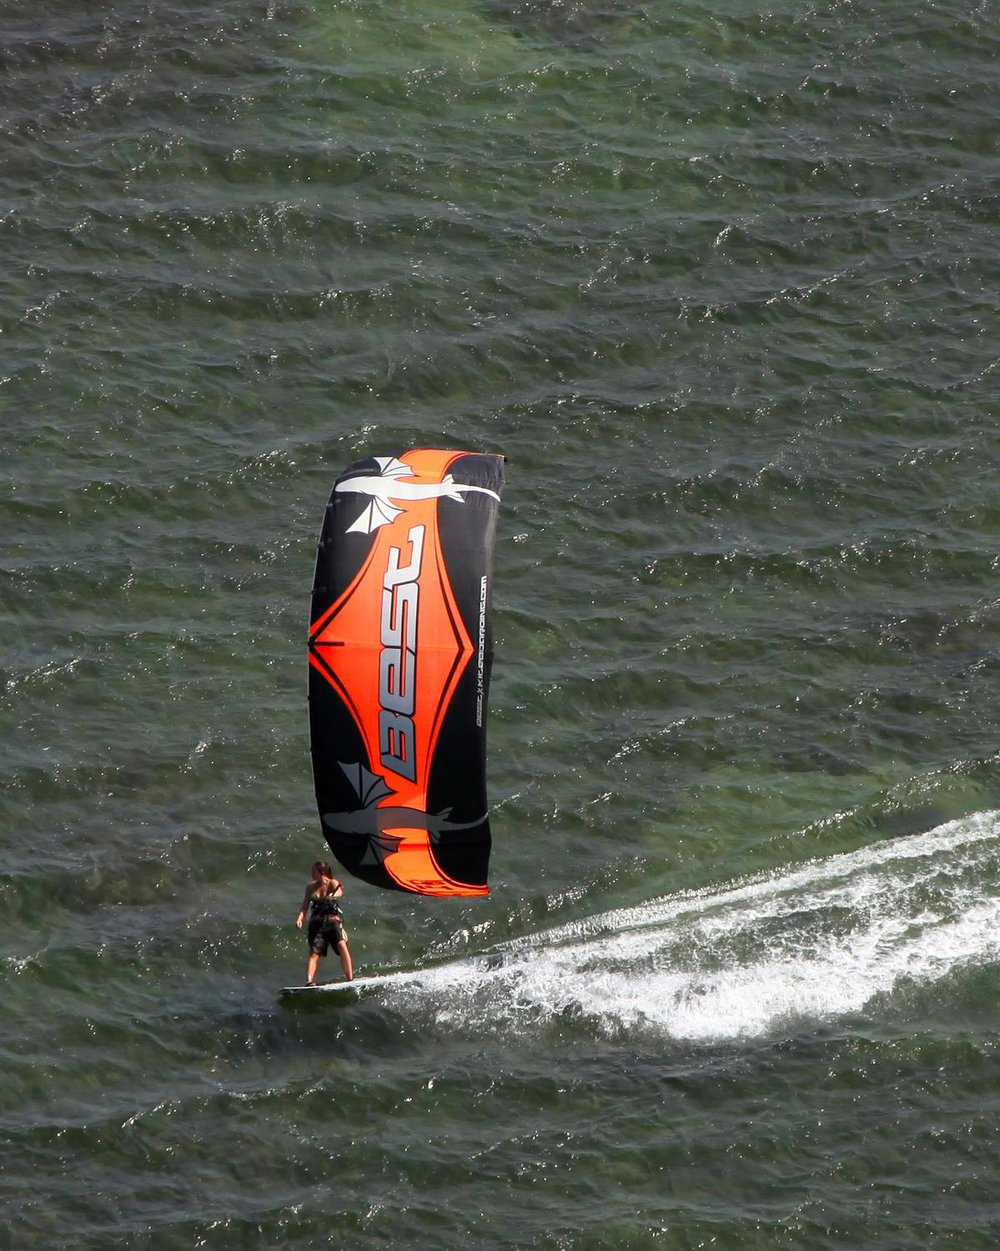 Kite Boarding at South Padre Island , Harlingen, Texas - Harlingen Aerial Photographer - Aerial Drone Image - Aerial Drone Video - Harlingen, TX - Rio Grande Valley, Texas